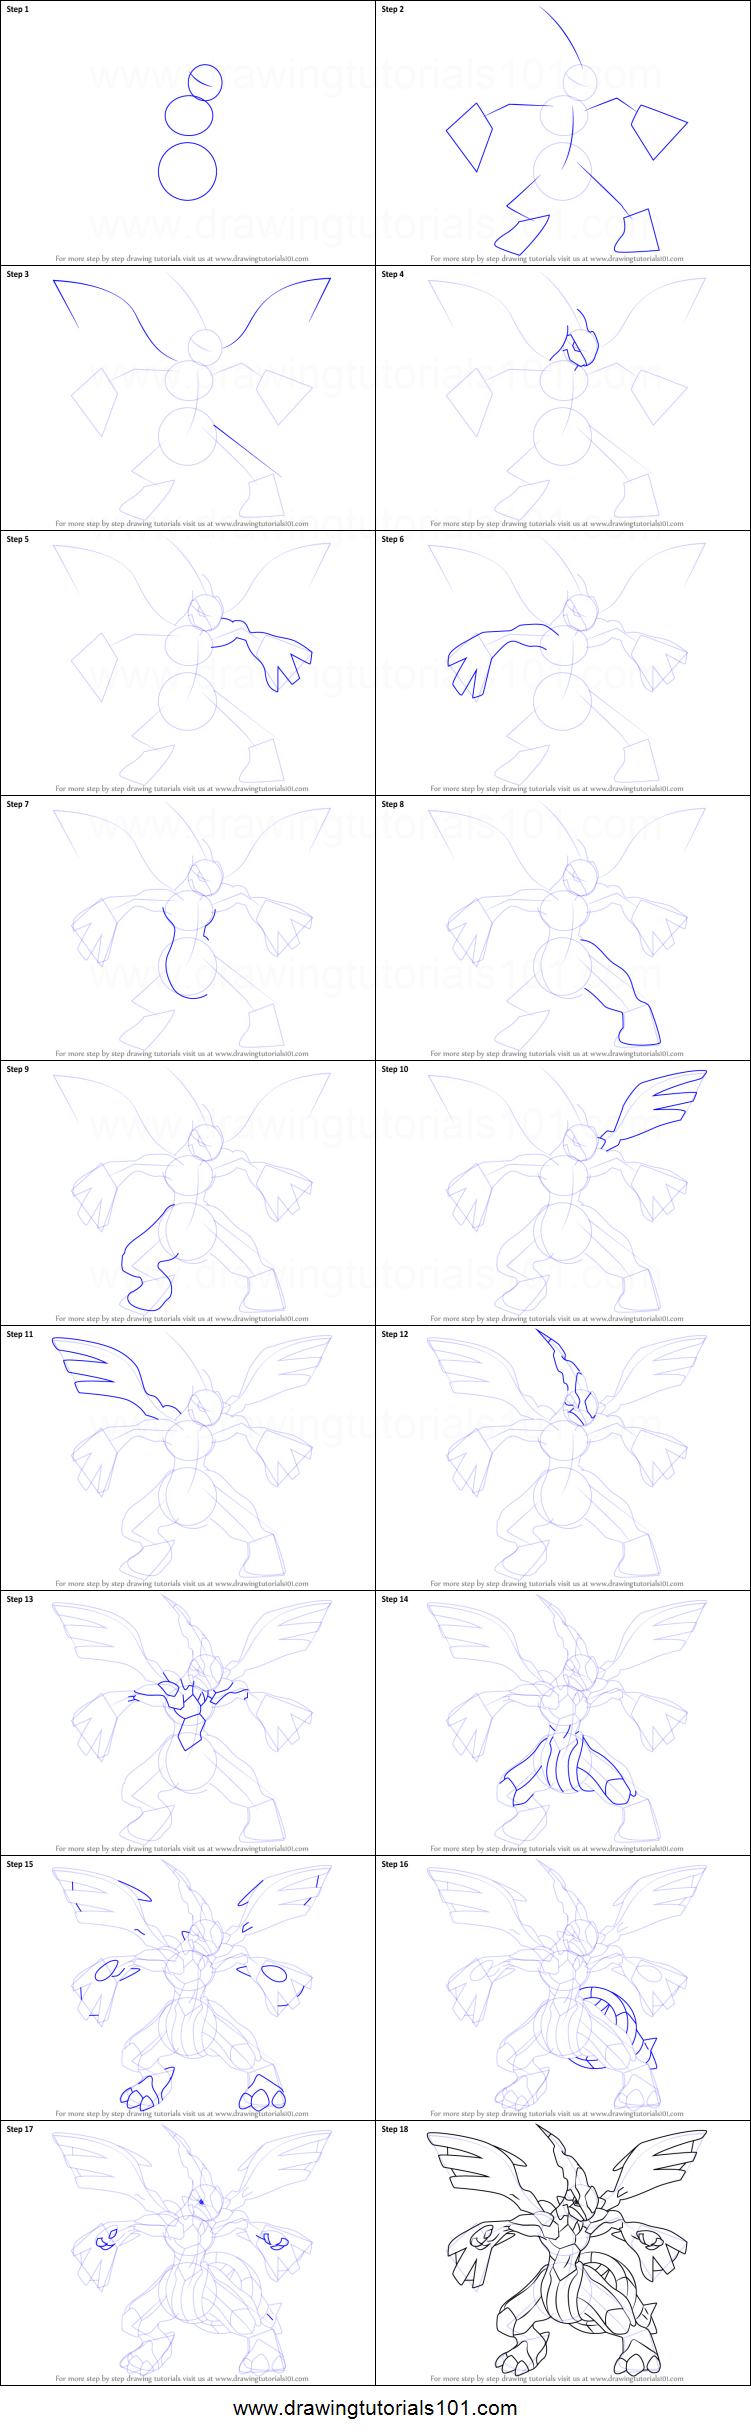 How to draw zekrom from pokemon printable step by step drawing how to draw zekrom from pokemon ccuart Images